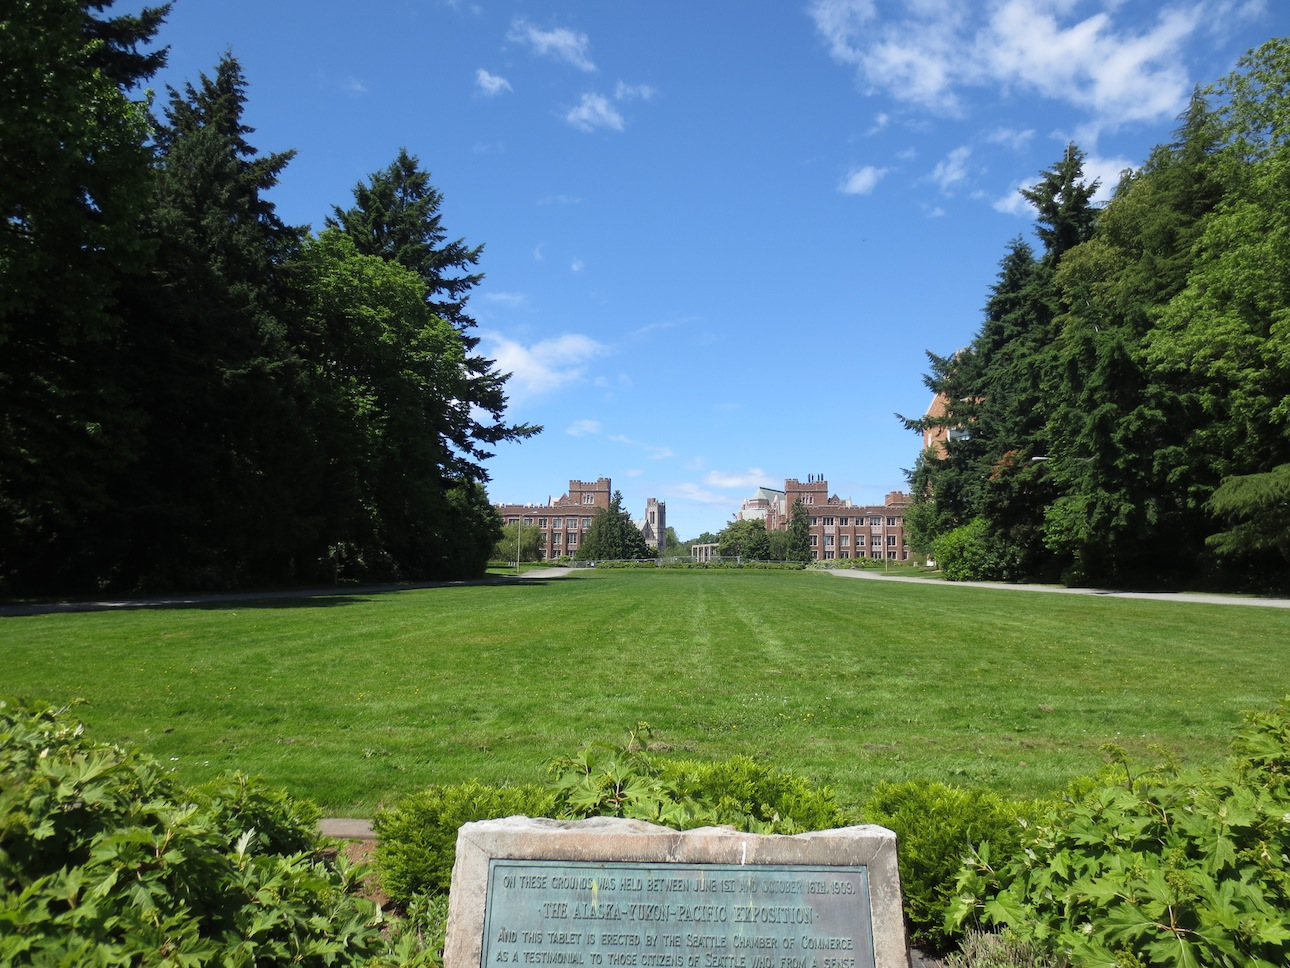 Plaque and field looking up at UW campus.